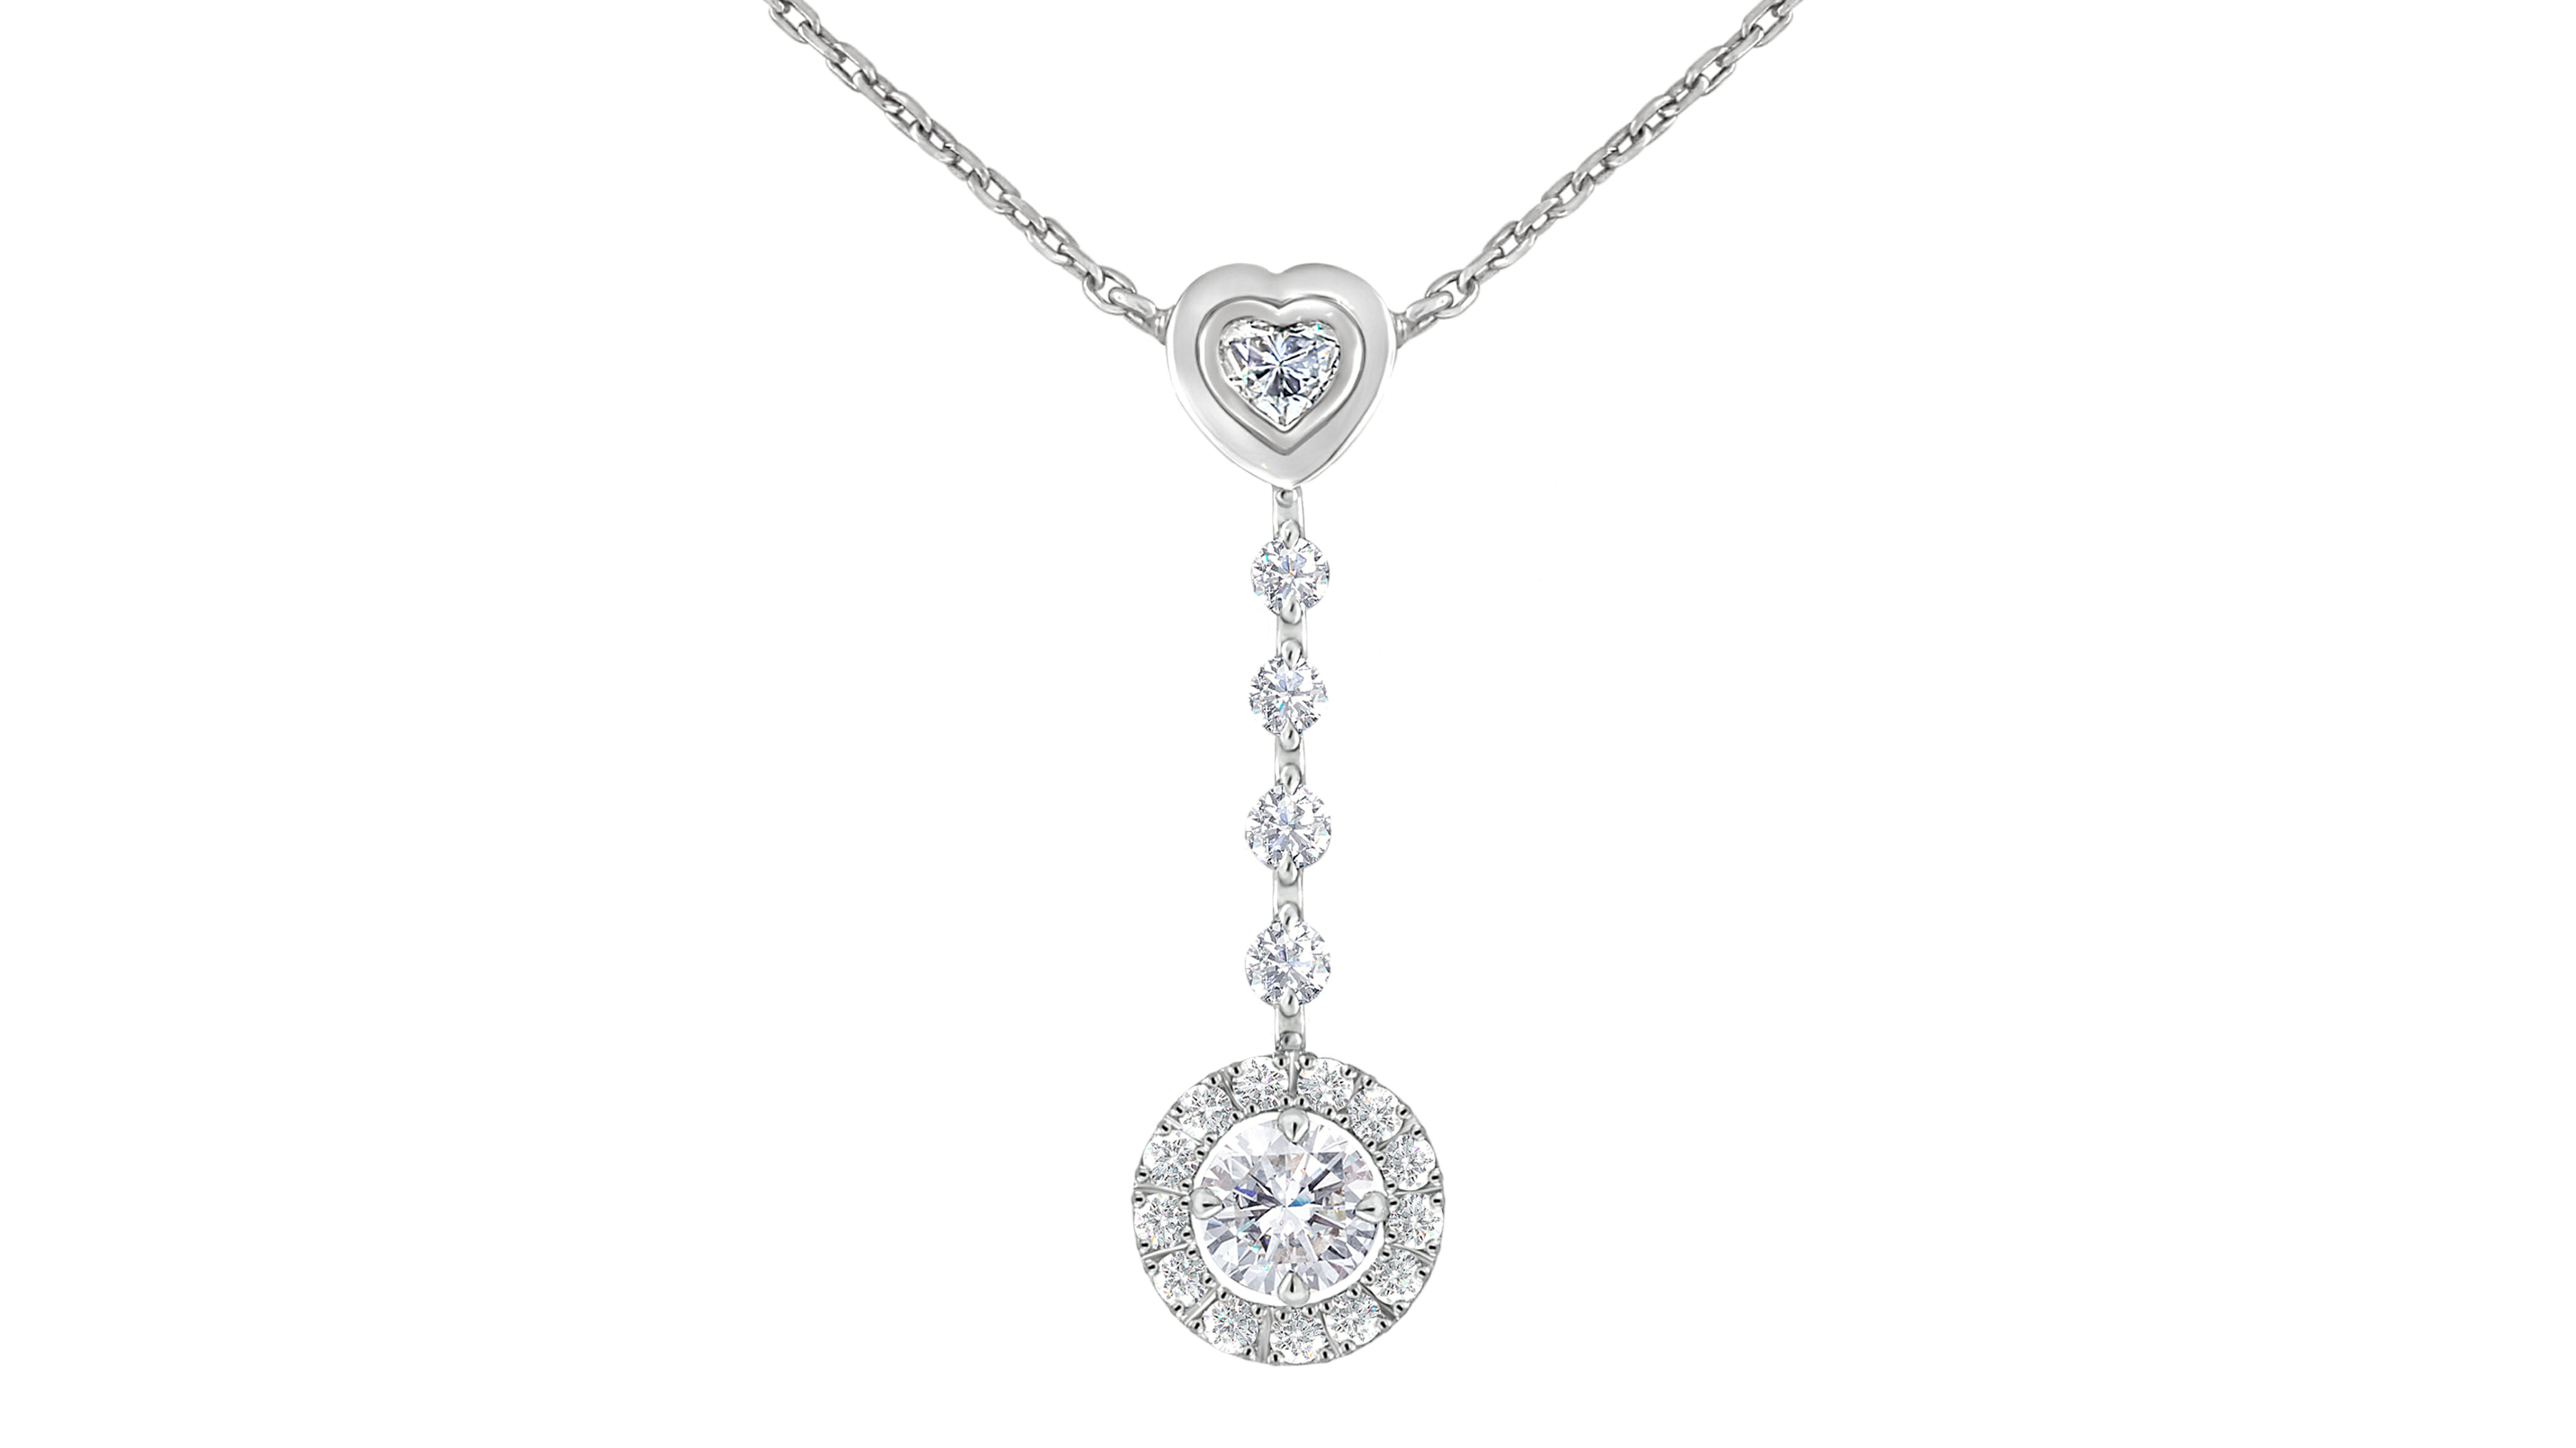 A whimsical heart-shaped diamond and diamon halo drop pendant set in 18carat white gold